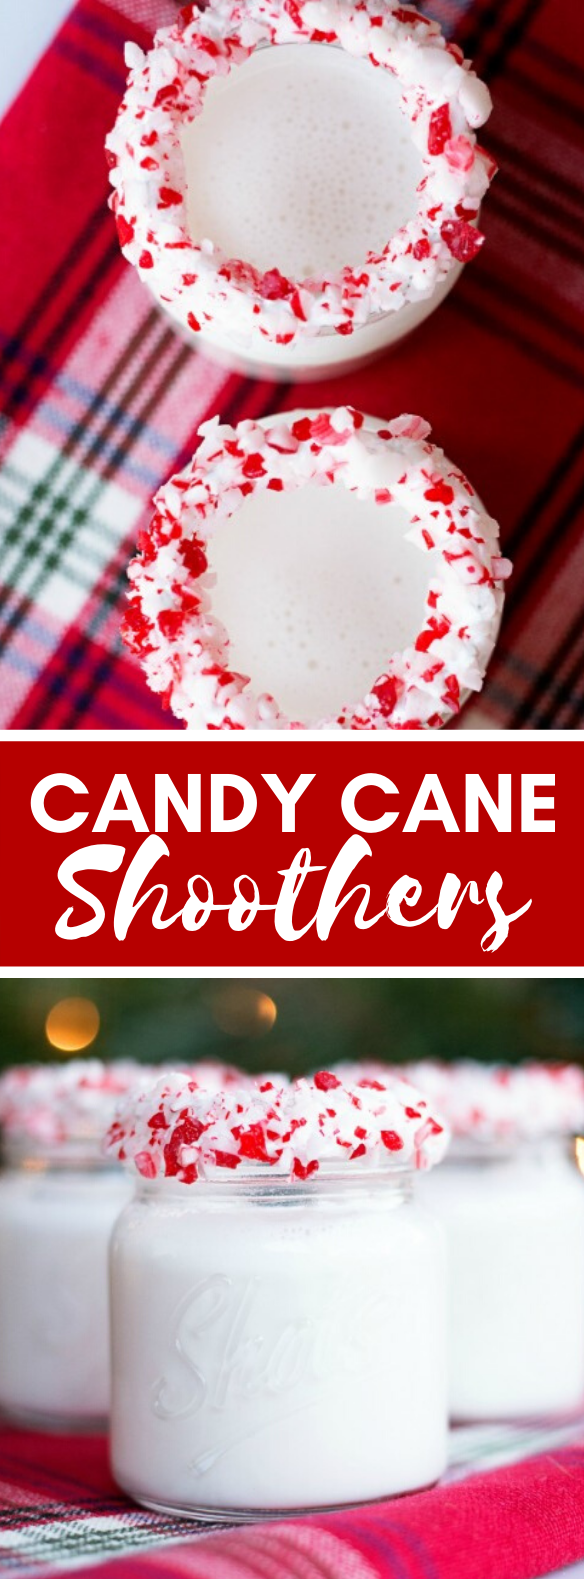 Candy Cane Shooters #drinks #christmas